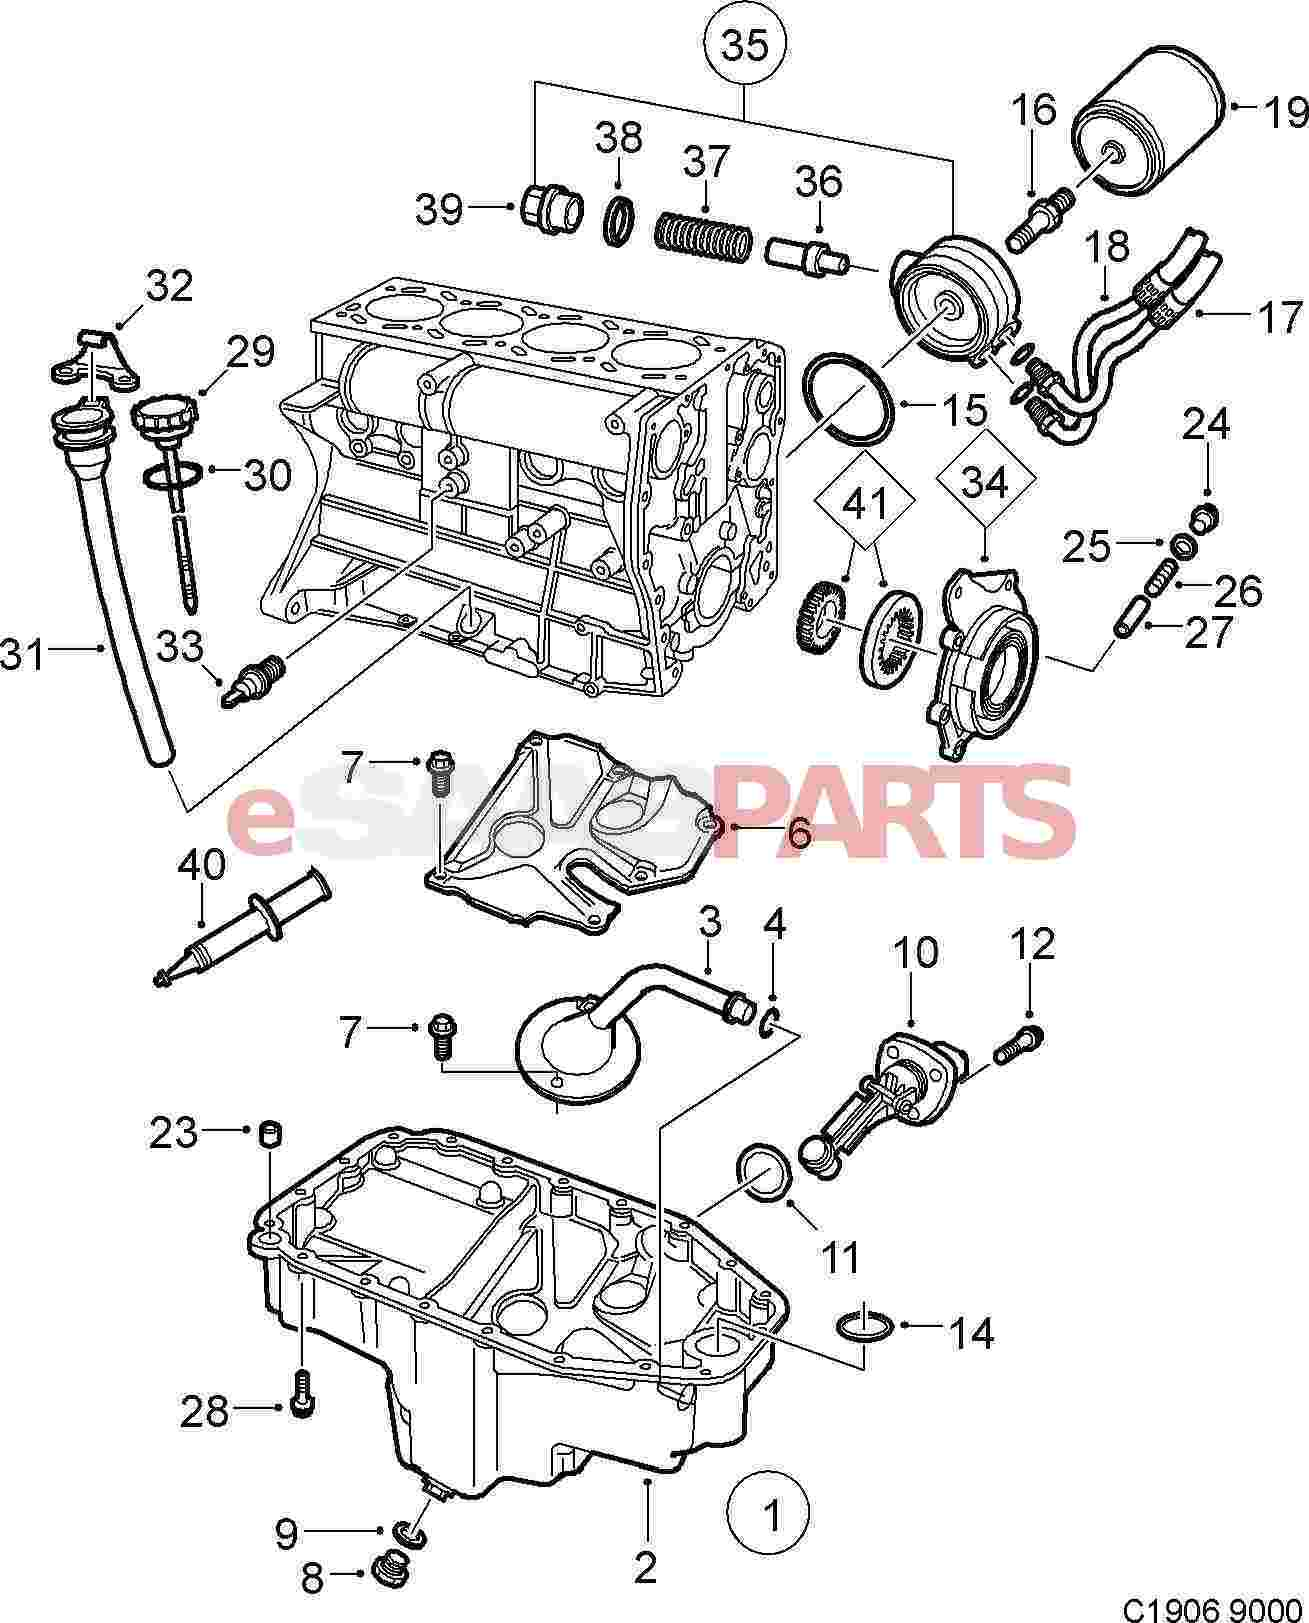 saab 900 2 3l engine diagram  saab  auto wiring diagram